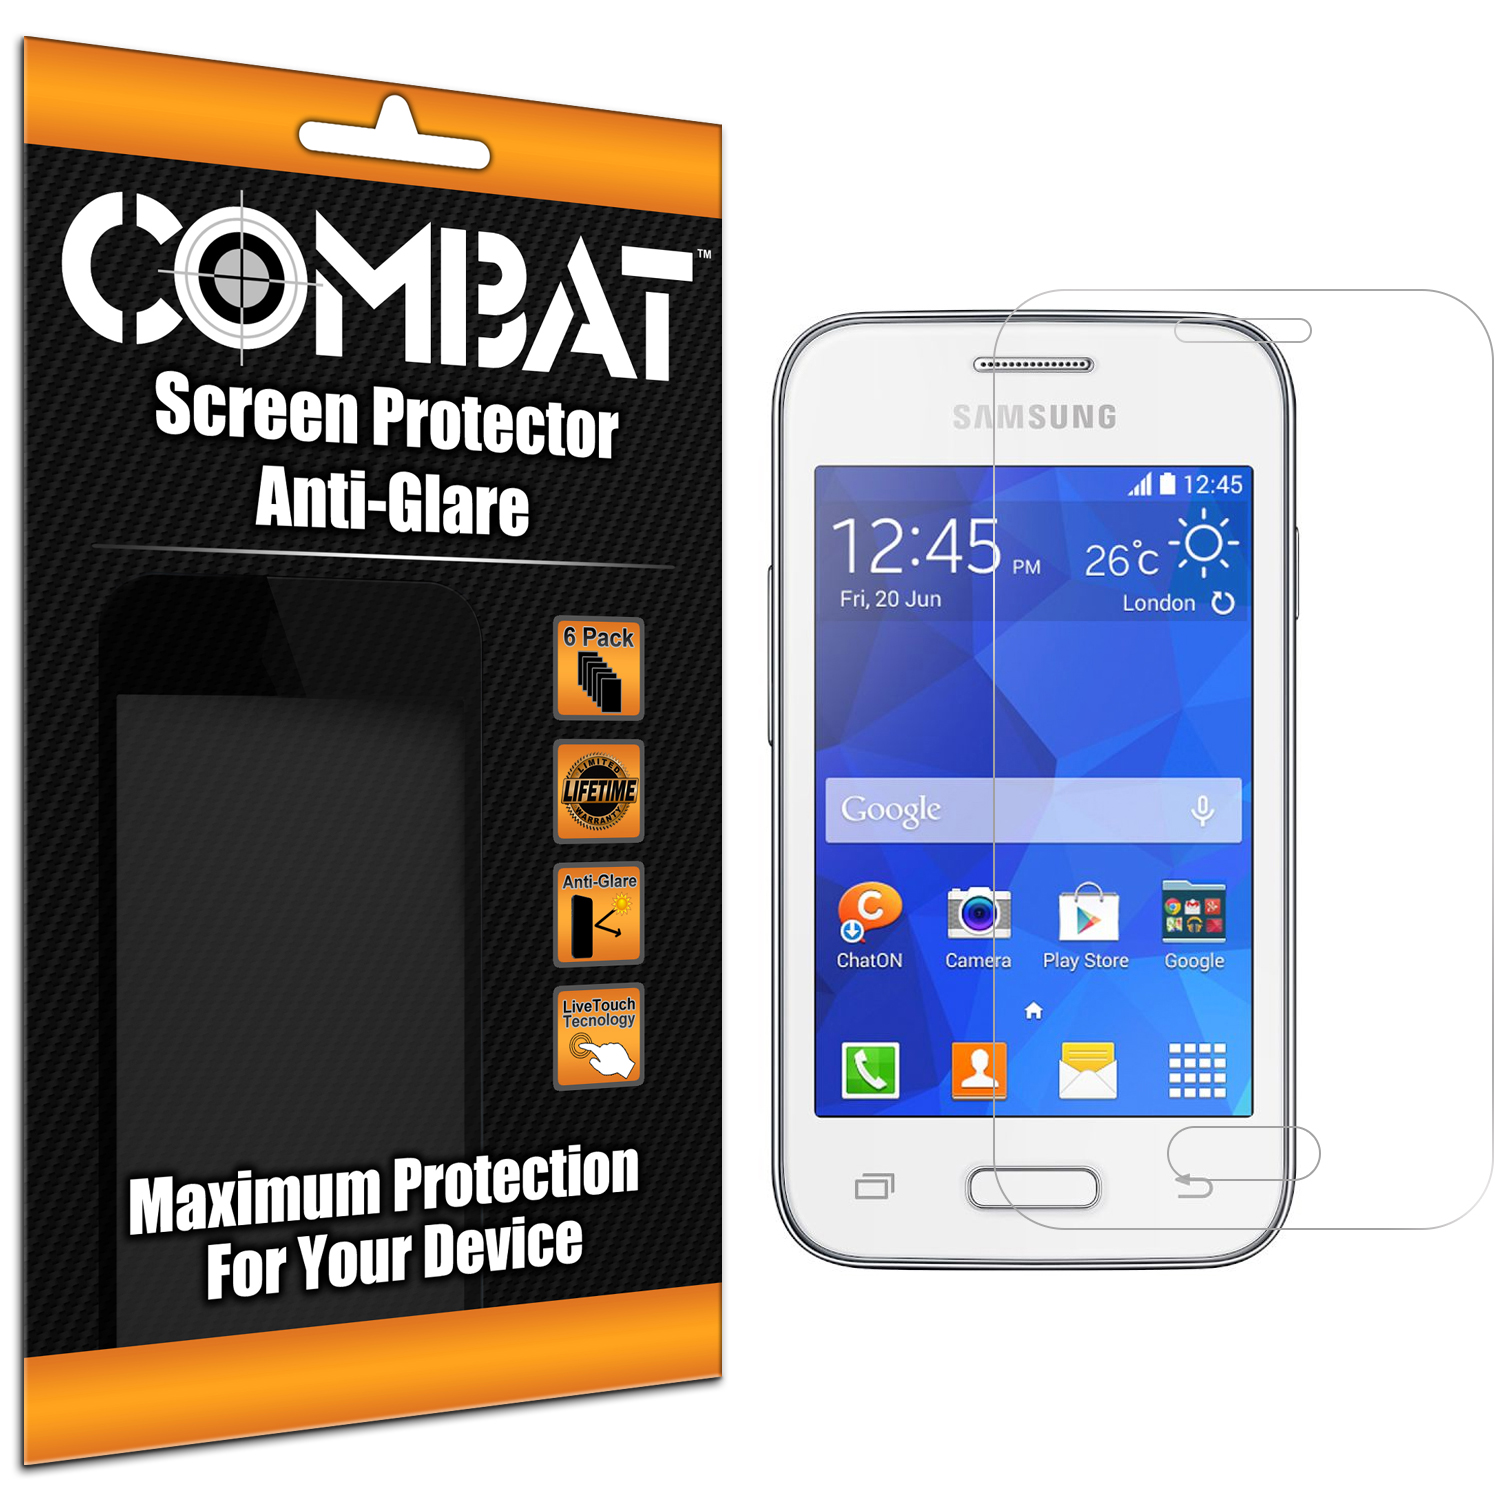 Samsung Galaxy Young 2 Combat 6 Pack Anti-Glare Matte Screen Protector